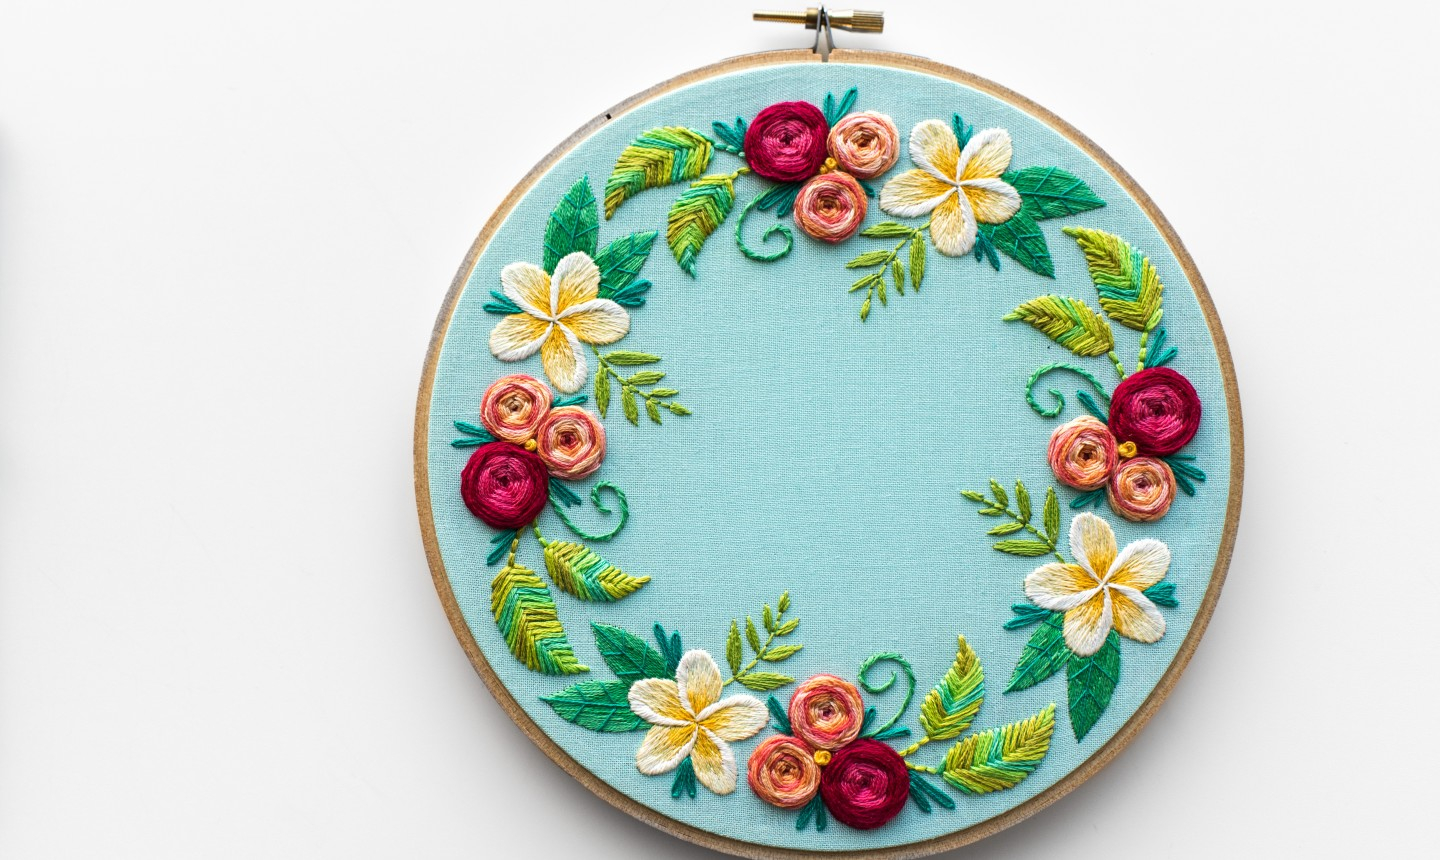 Free Flower Embroidery Patterns 5 Beginner Hand Embroidery Projects